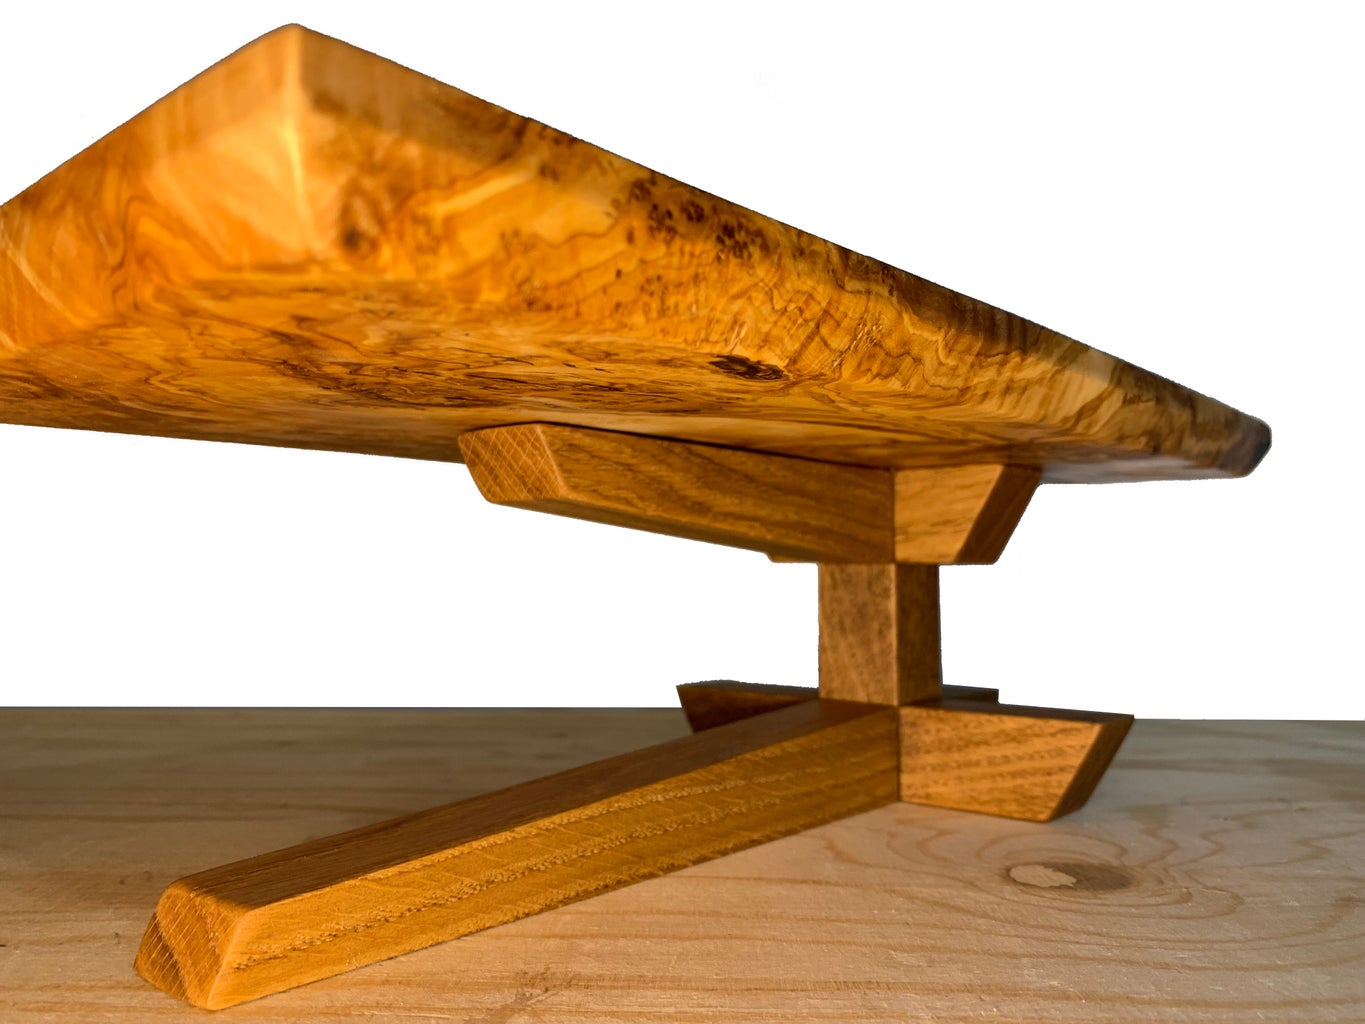 Wood Cake Stand - Hand-cut Japanese Joinery